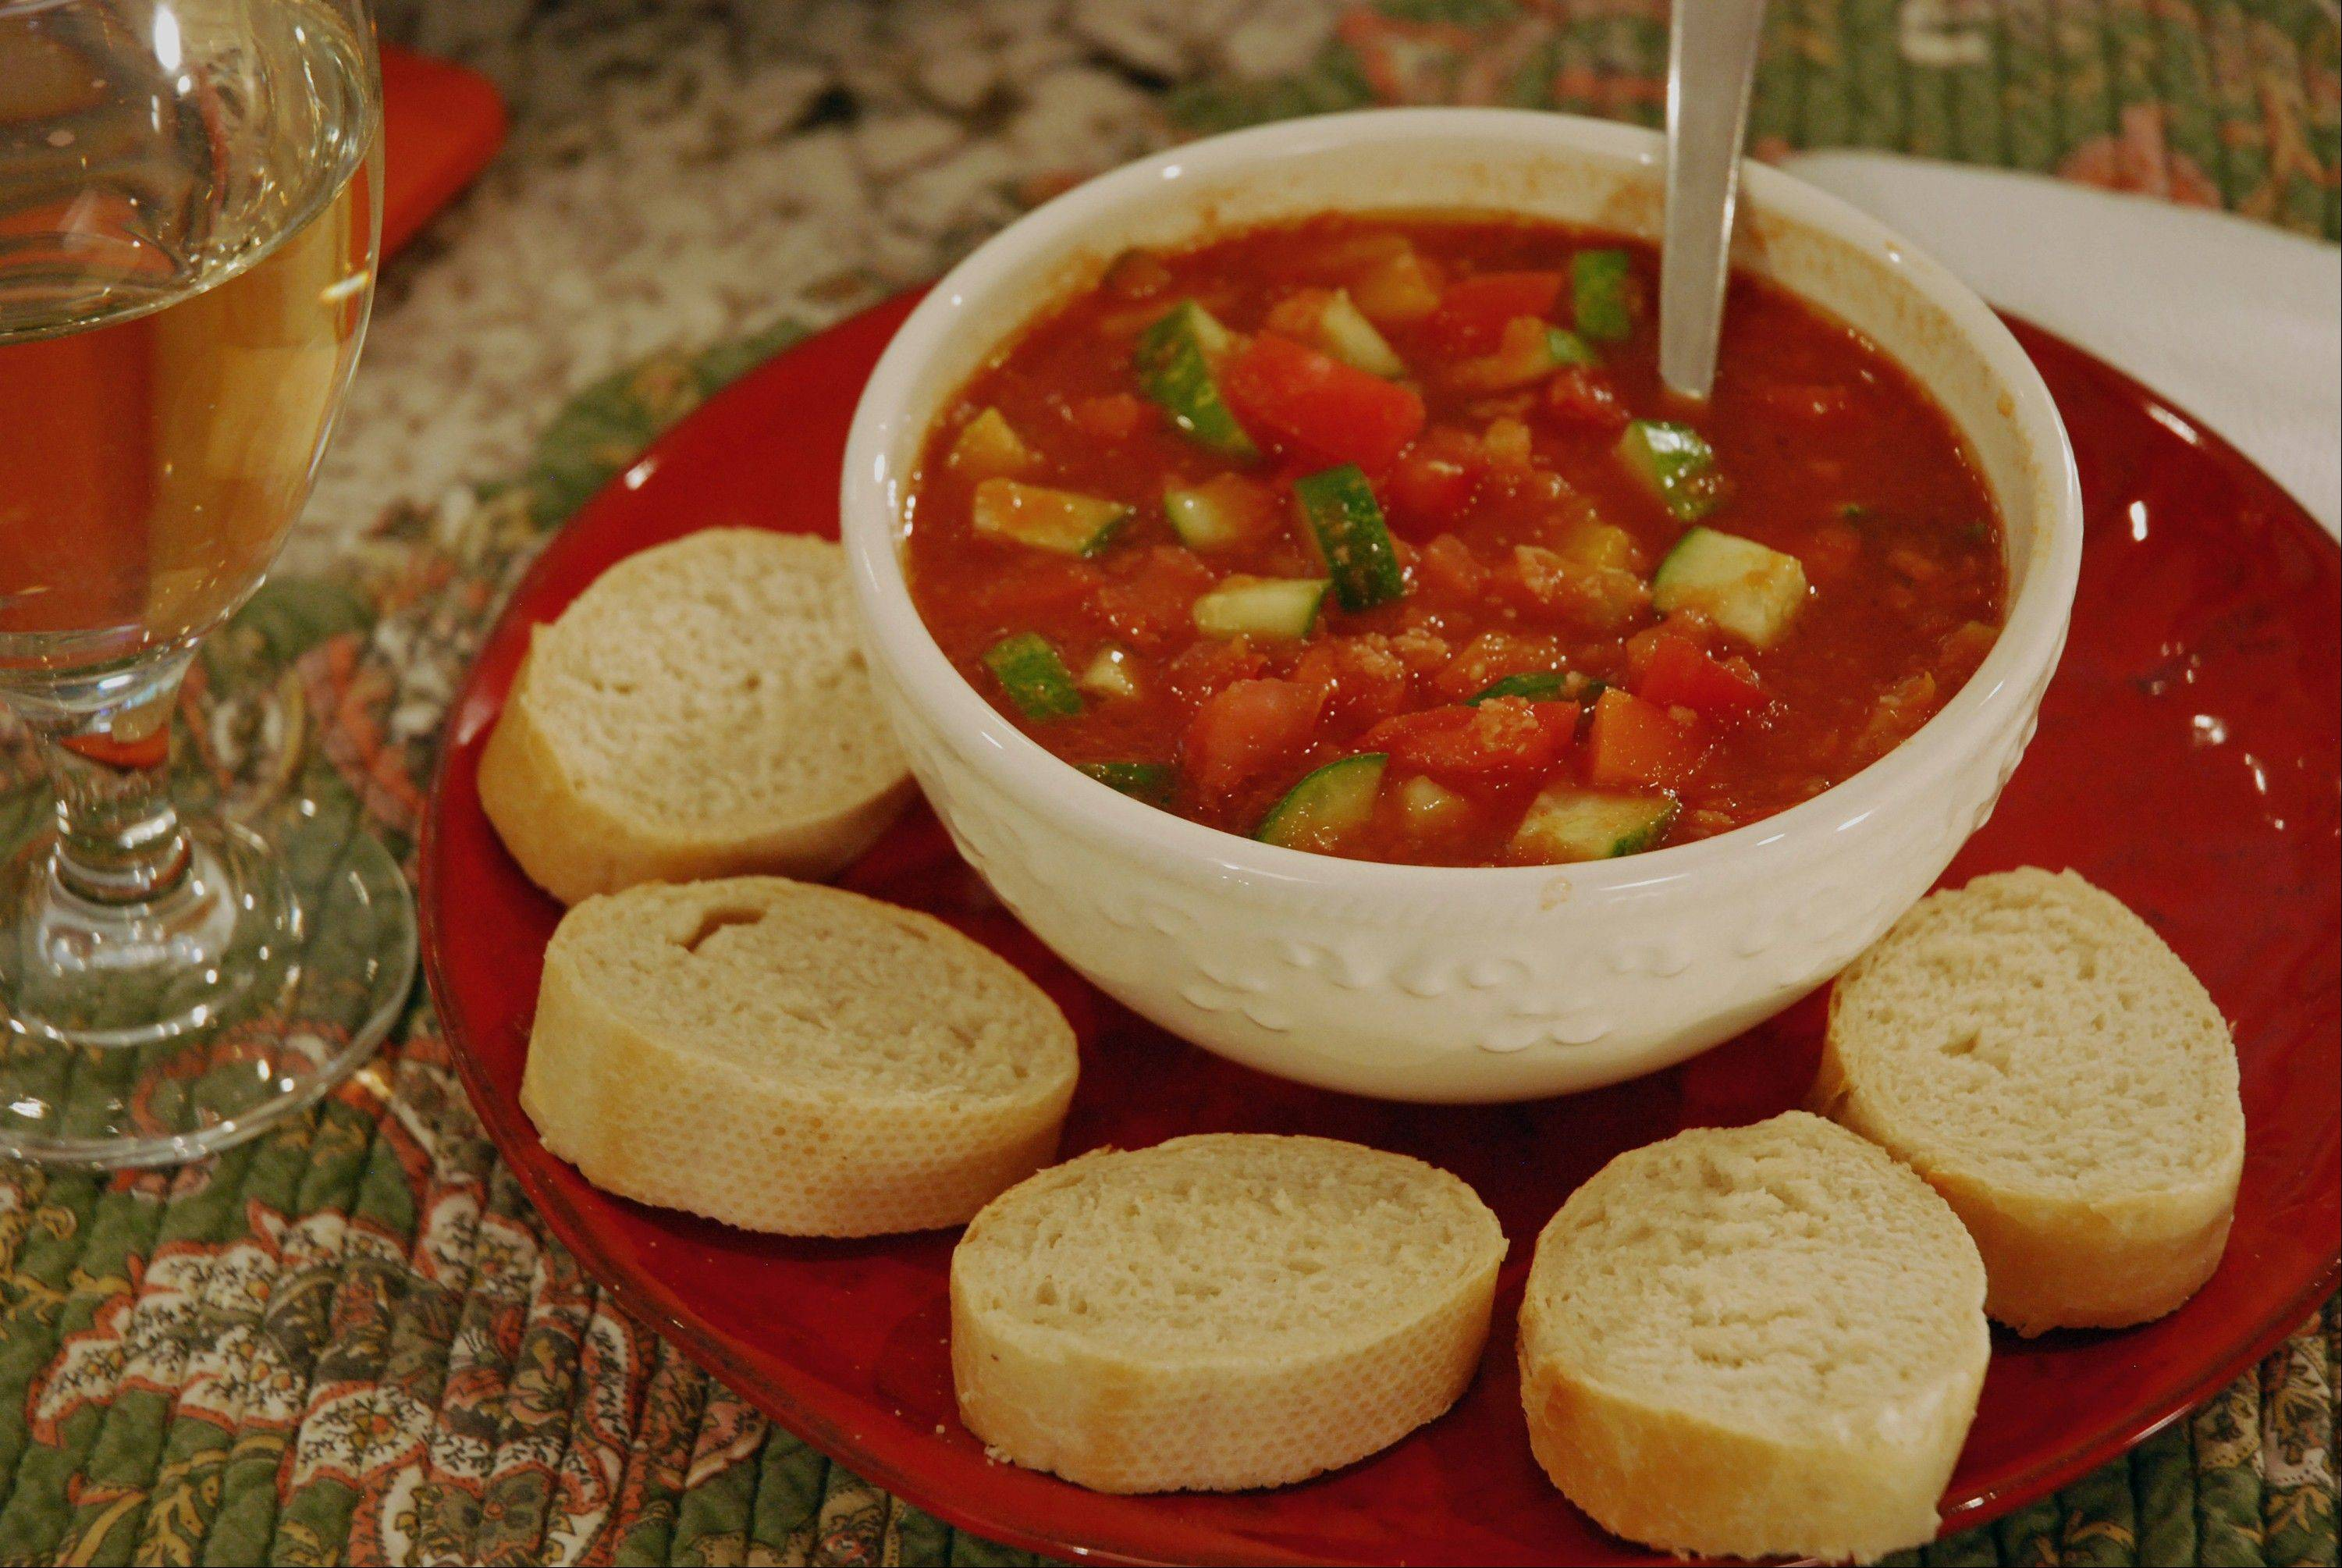 Chilled gazpacho is a nice addition to the line up of traditional Fourth of July foods.